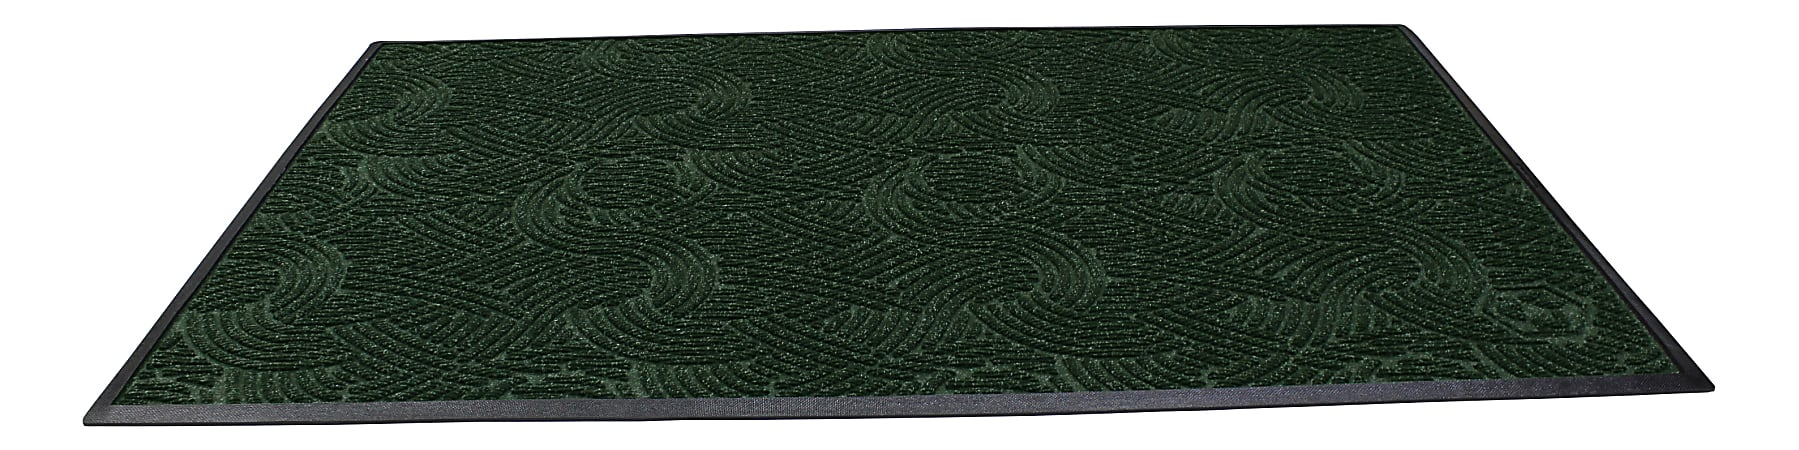 "Waterhog Plus Swirl Floor Mat, 48"" x 96"", 100% Recycled, Southern Pine"